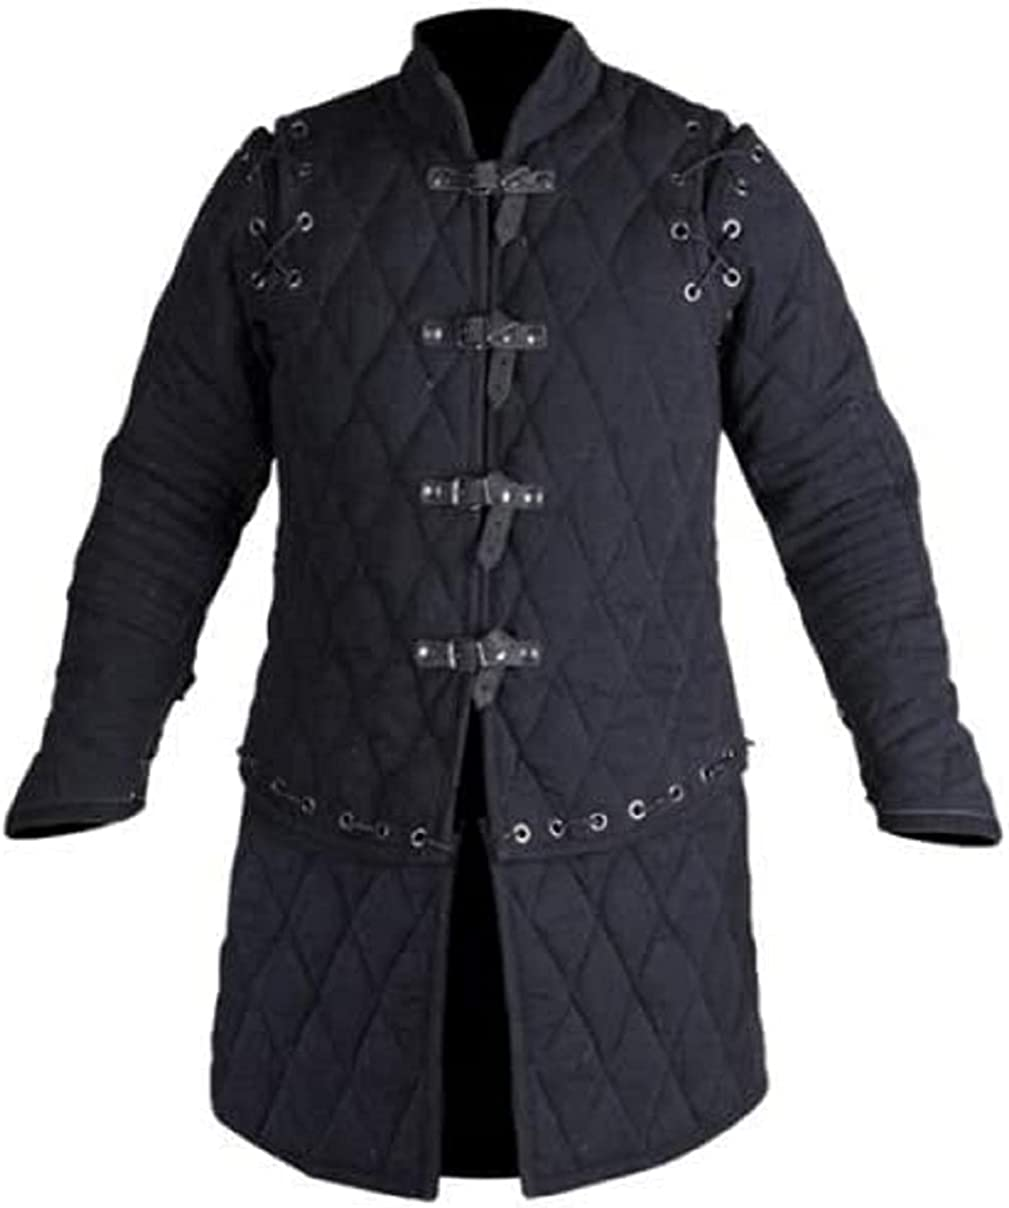 SANGAMSTEELCRAFT Thick Padded lowest Elegant price Medieval Jacket Costumes Gambeson